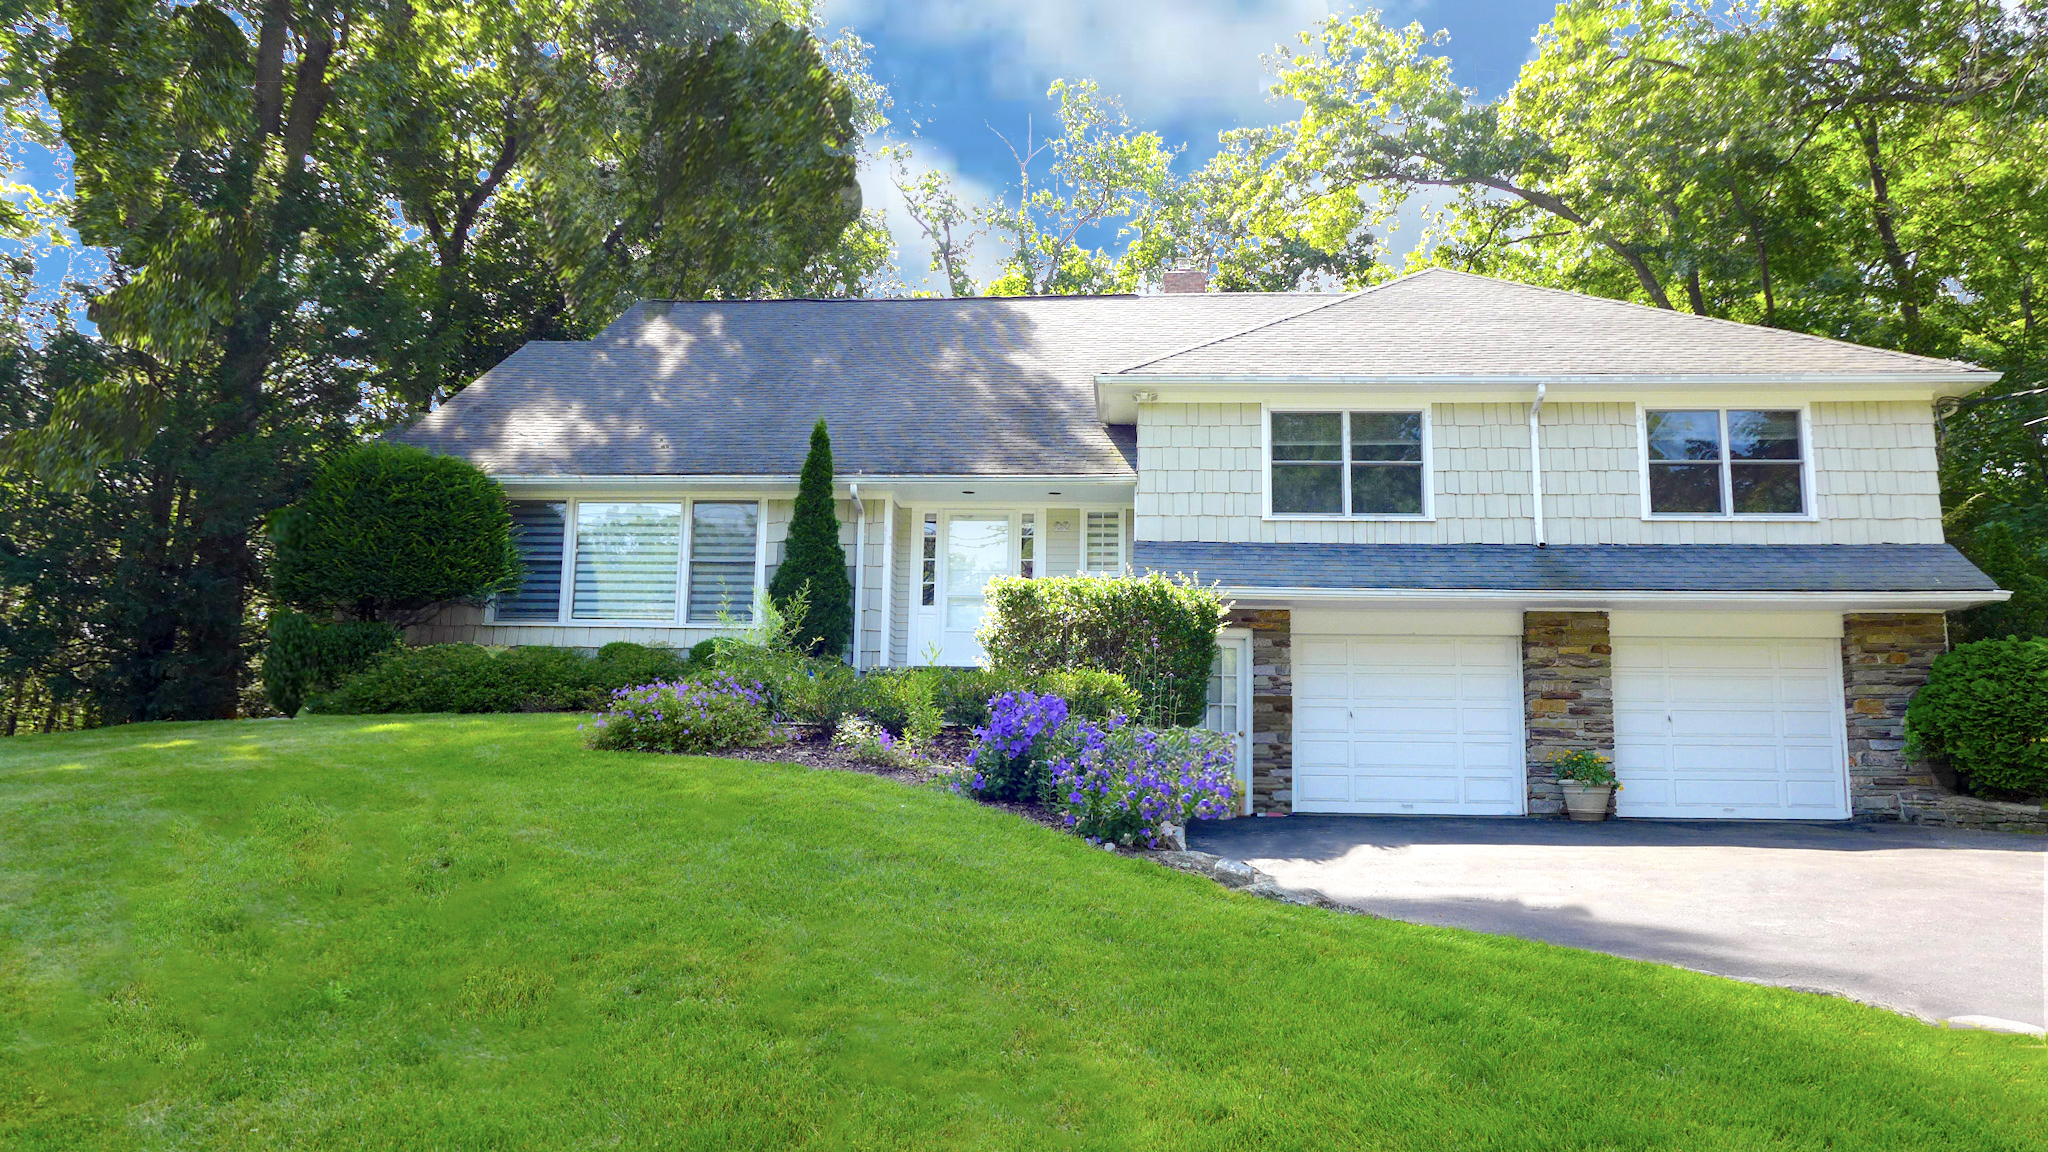 SOLD  22 Aspen Road Scarsdale, NY. Represented the Buyer.